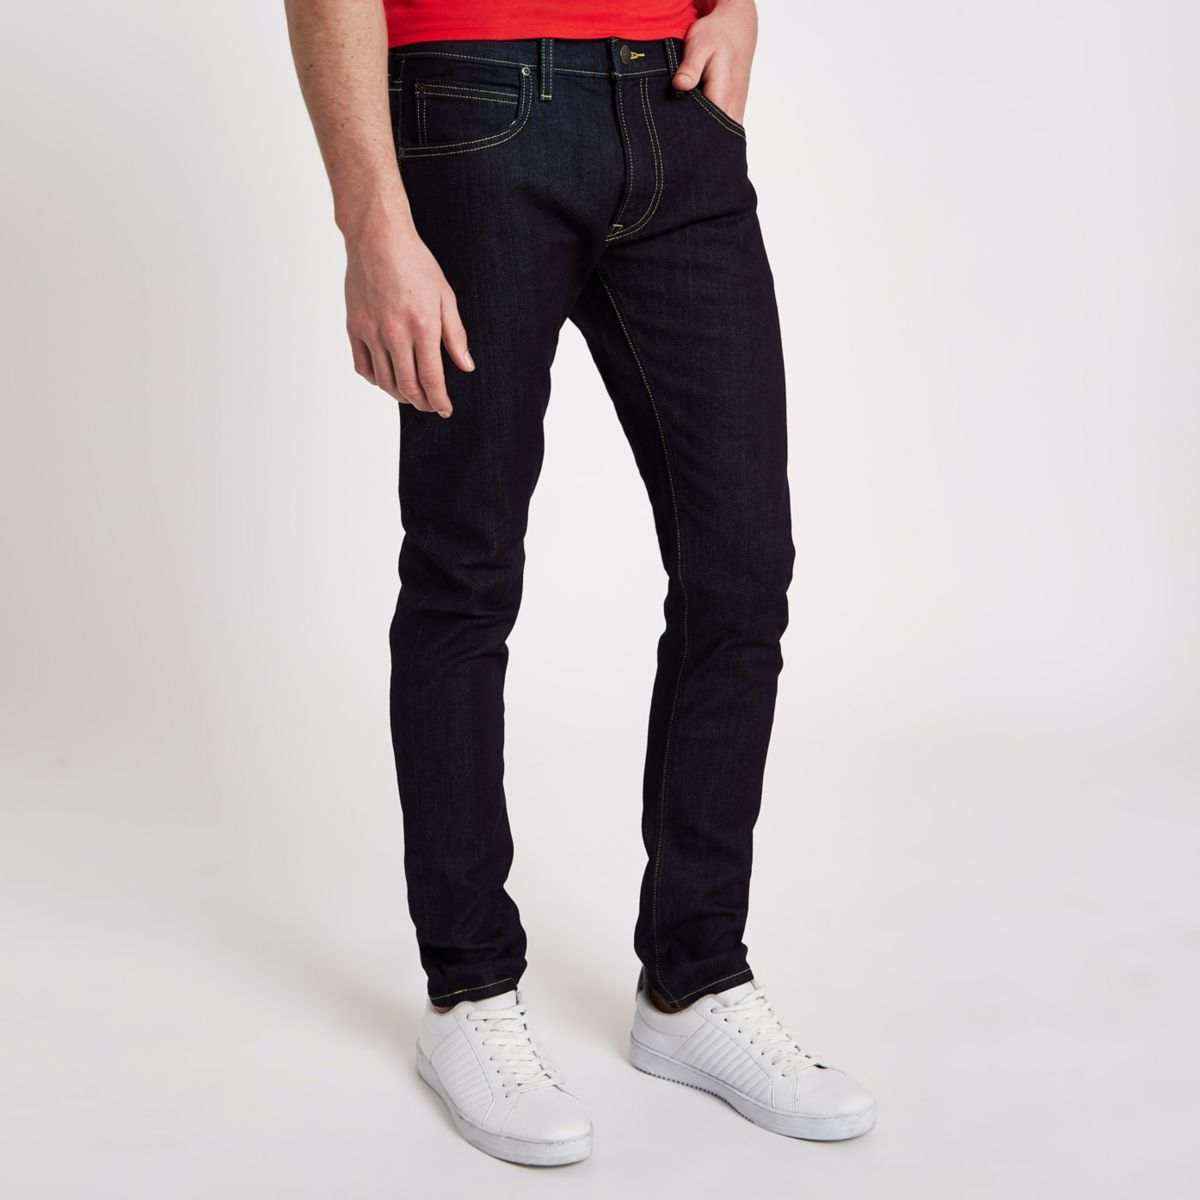 River Island Mens Lee dark Blue tapered jeans Lee Manchester Great Sale Sale Online QzIyraac3N